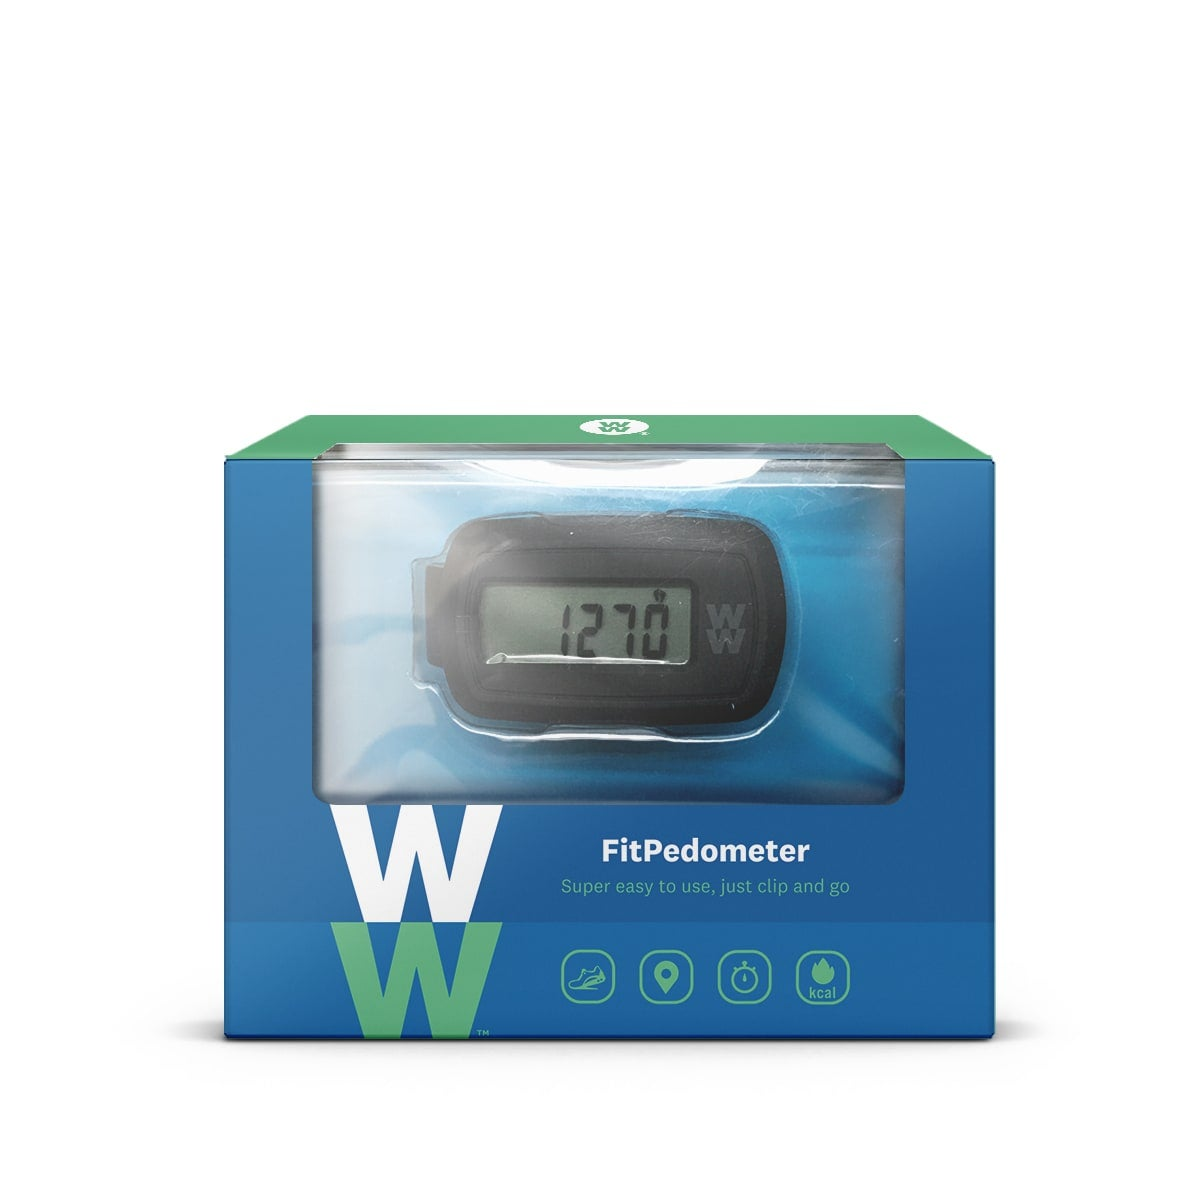 WW Pedometer, simple gadget to track steps, distance and calories burned, view your activity in real time, clip on